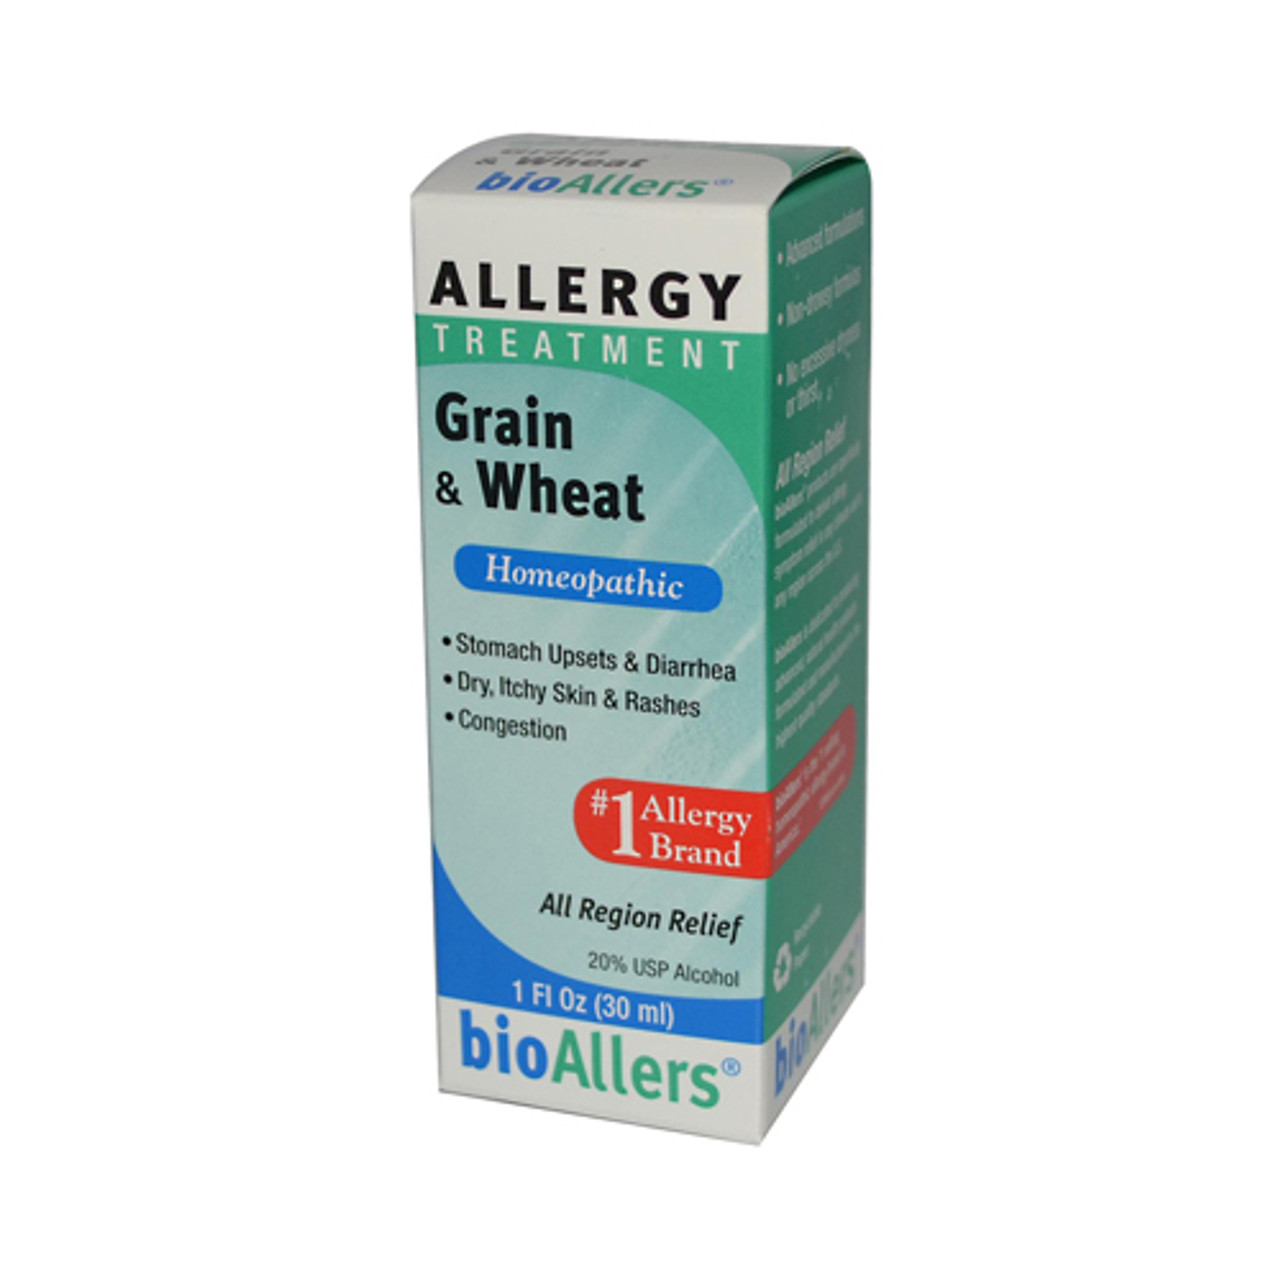 Grain Bio Bio Allers Grain And Wheat Allergy Treatment 1x1 Fl Oz